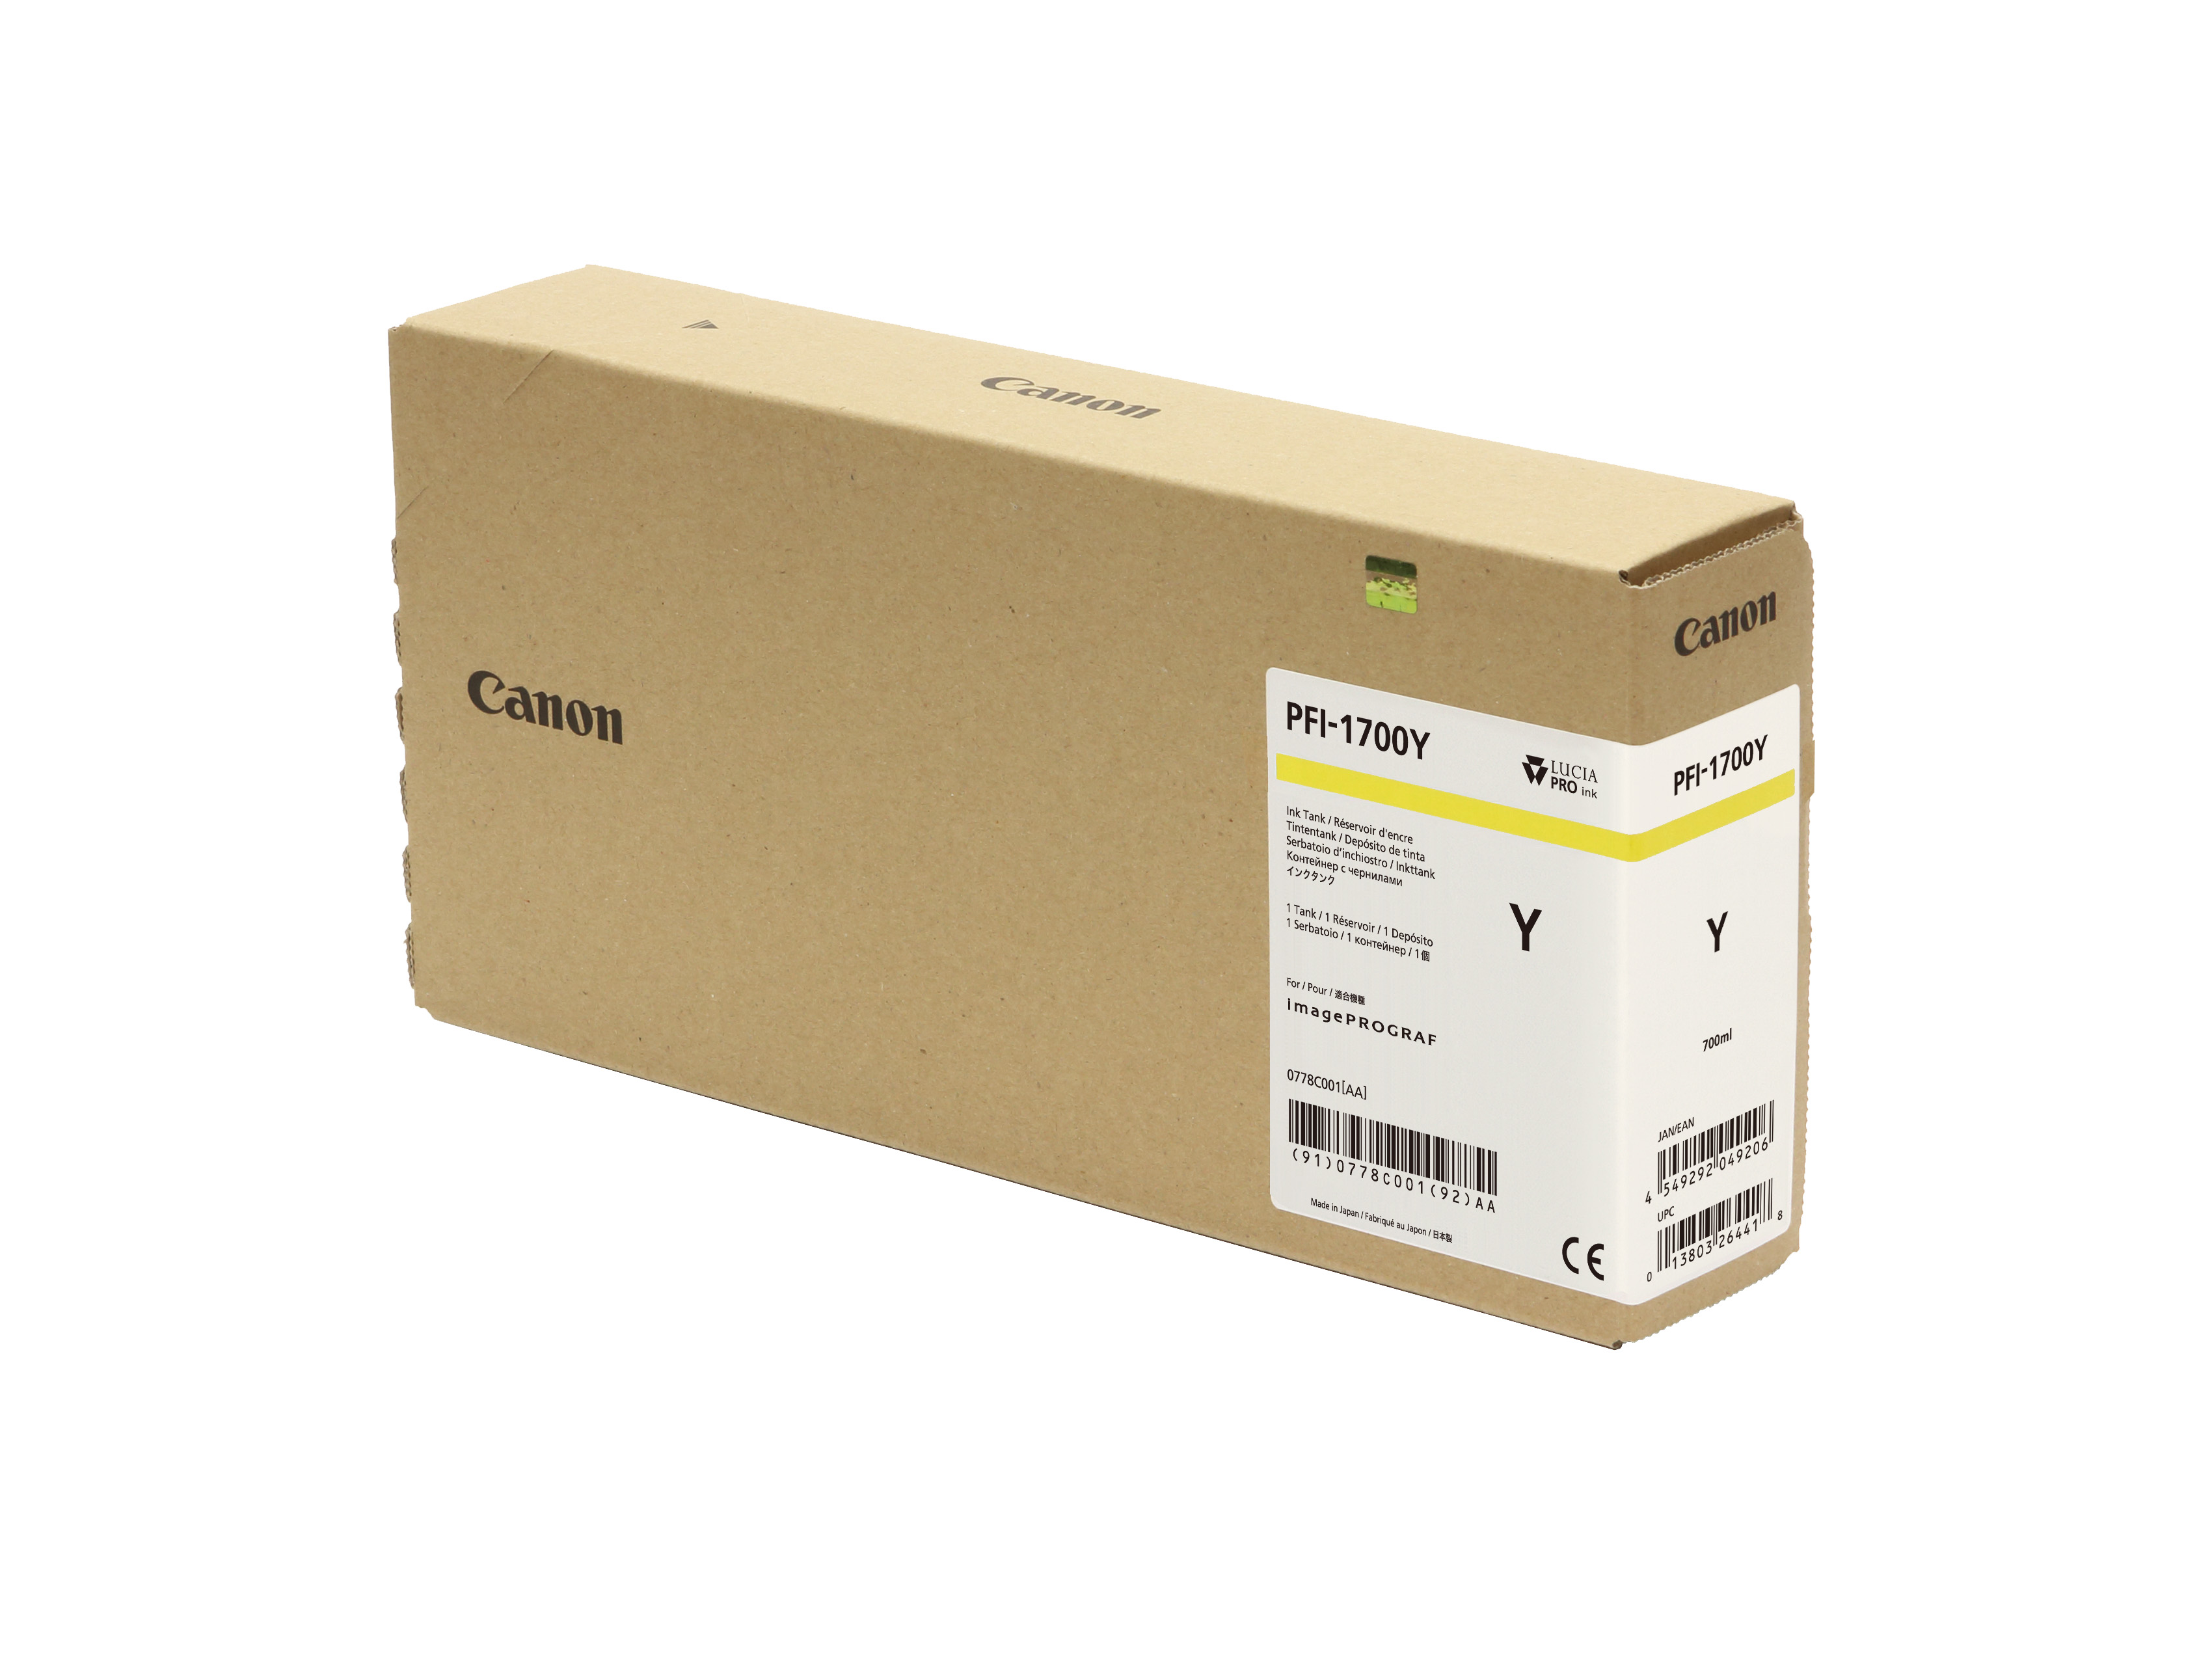 Canon PFI-1700Y Yellow Ink Tank - 700ml Cartridge - for Canon PRO-2000, PRO-4000, PRO-4000S & PRO-6000S Printer - 0778C001AA - next day delivery from GDS Graphic Design Supplies Ltd